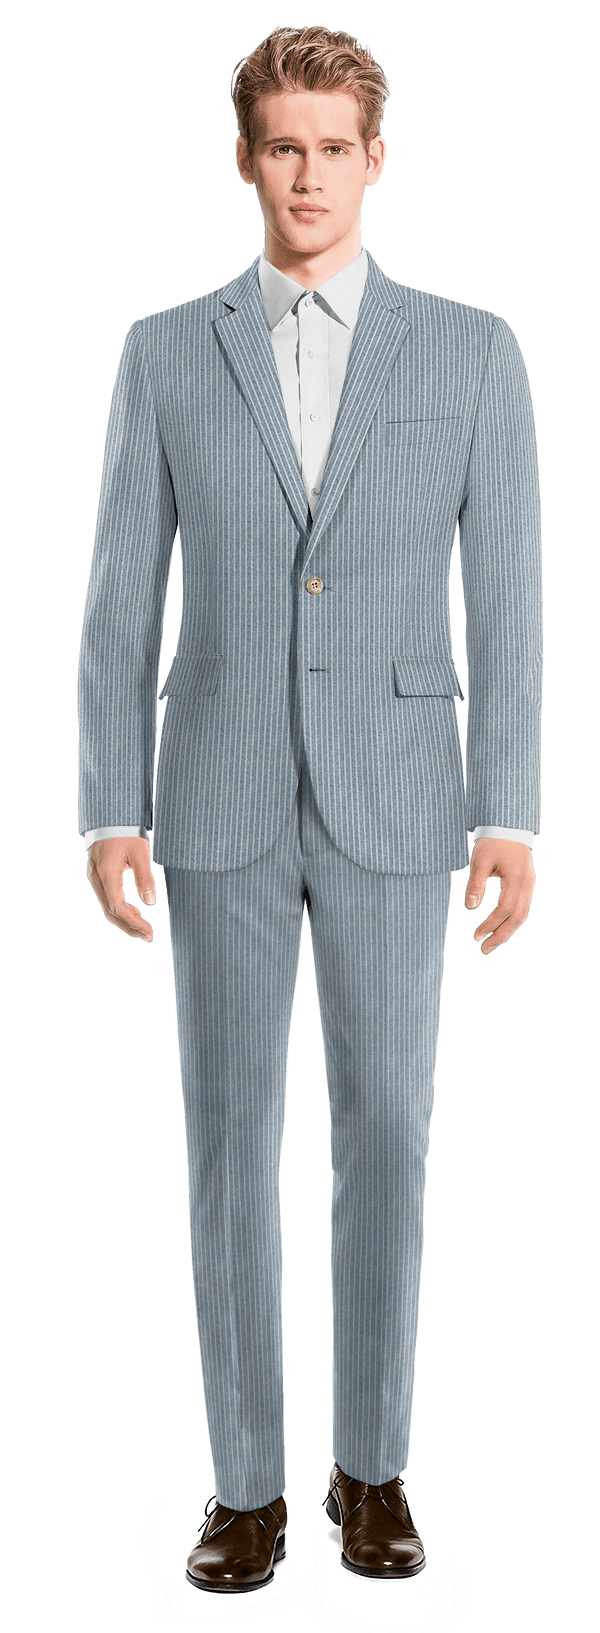 Shop online from our exclusive range of custom made men's linen suits! Get your custom suit online today from StudioSuits! Worldwide shipping available! Shop today! NEW! Solbiati Denim Mid Blue Linen Suit. $ SHOW CLOSEUP. Solbiati Denim Light Blue Linen Suit. $ SHOW CLOSEUP. Solbiati Denim Dark Blue Linen Suit. $ SHOW CLOSEUP.